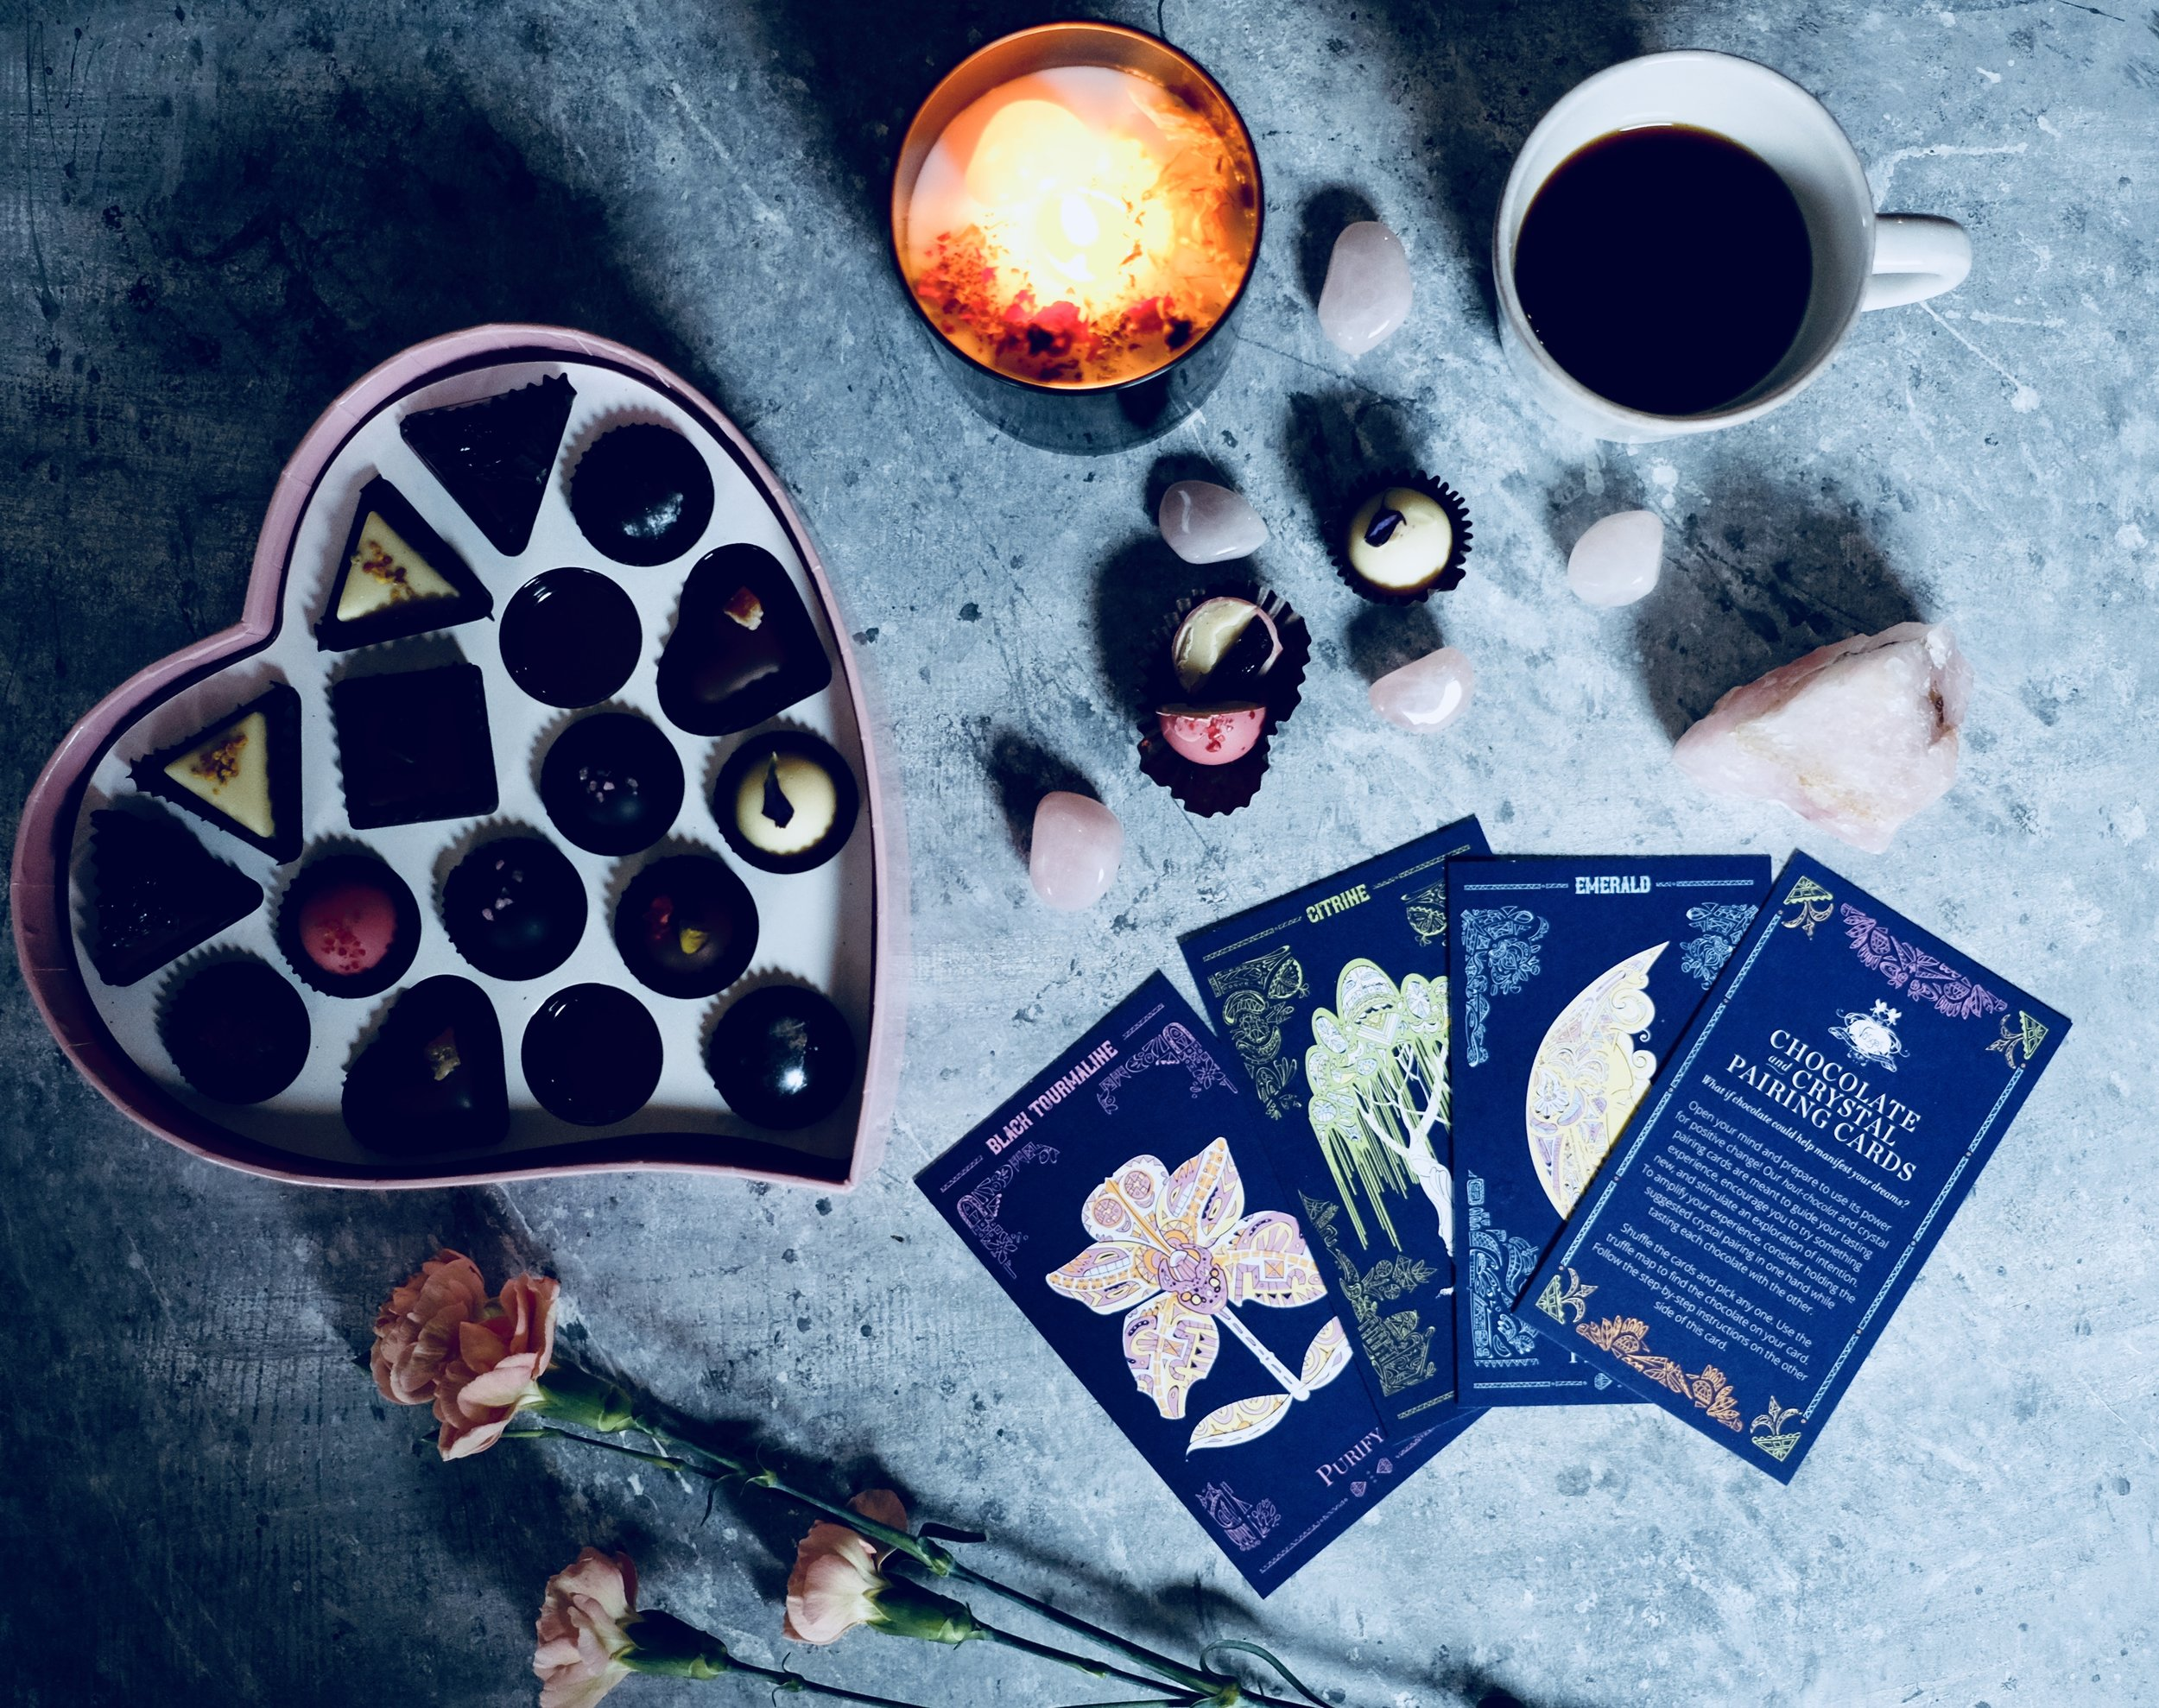 Pictured here Vosges Cosmic Heart Chocolate collection & MARVEL + MOON Tenth Muse candle.